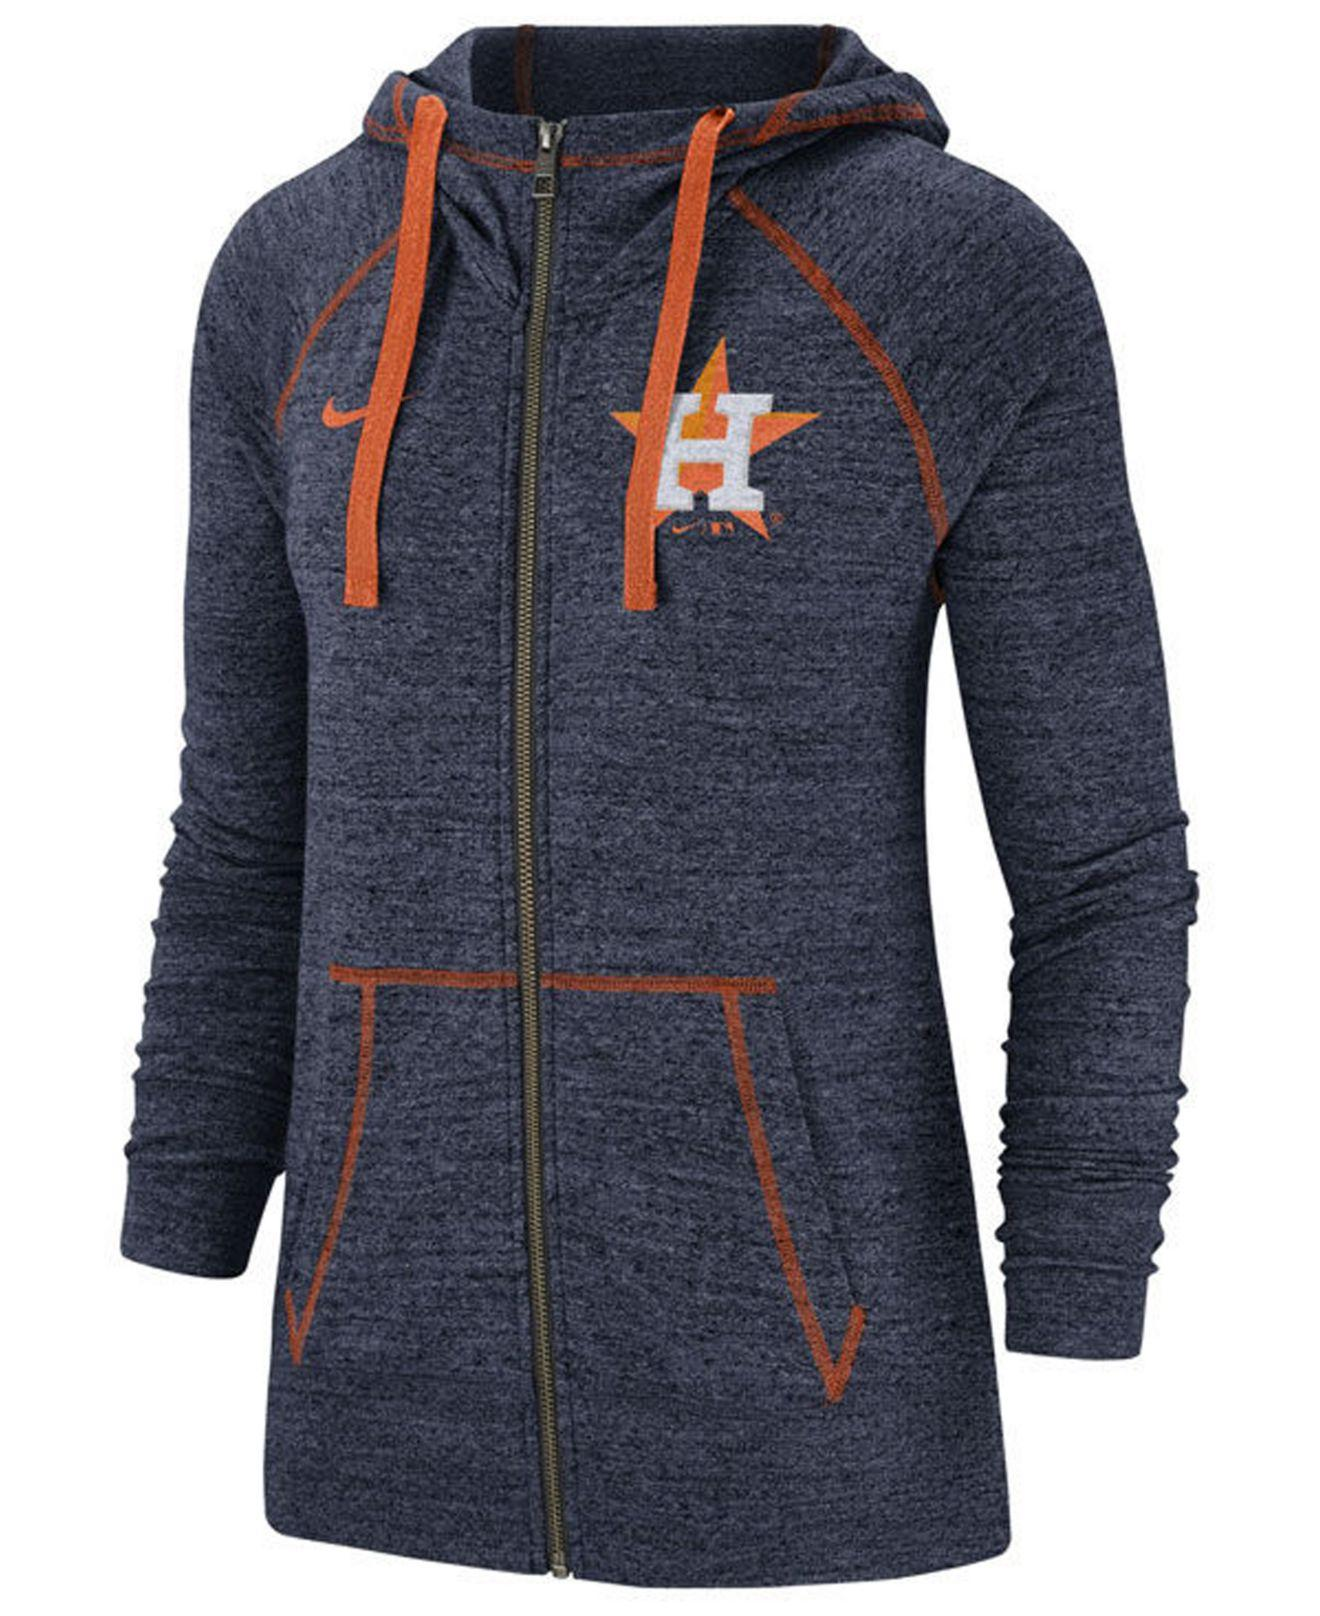 142b028cd1d0 Lyst - Nike Houston Astros Gym Vintage Full-zip Hooded Sweatshirt in ...